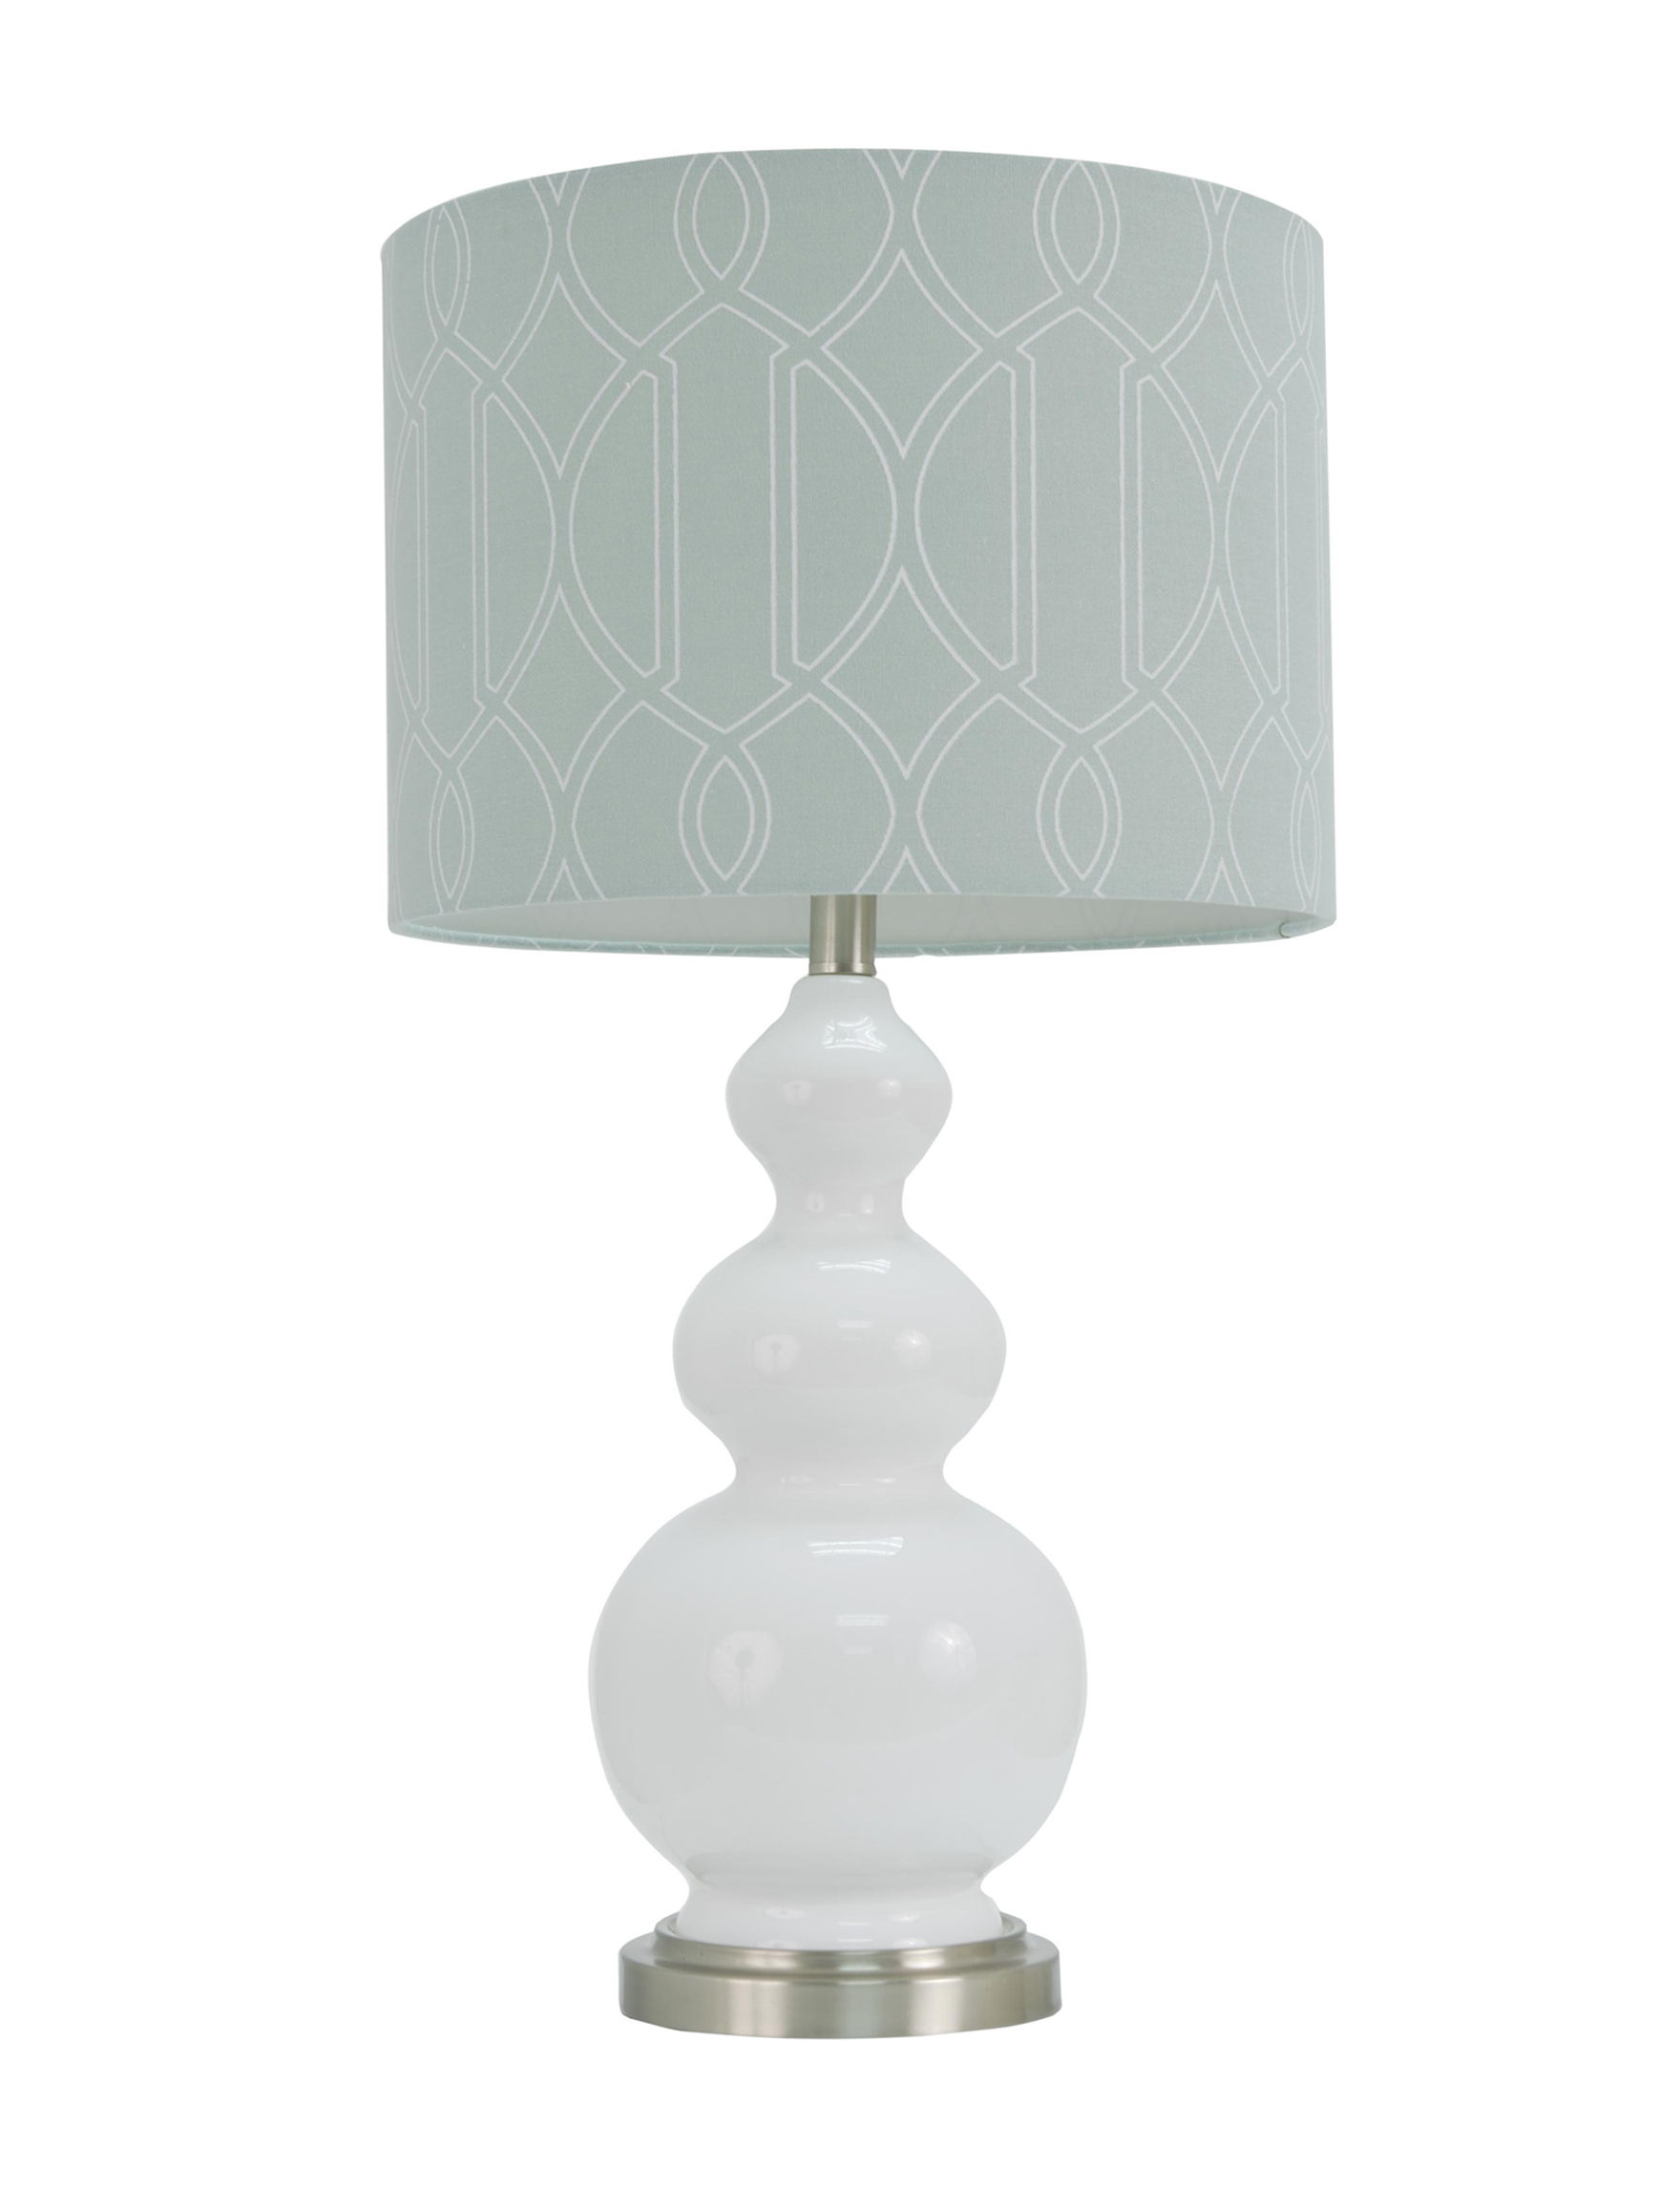 Decor Therapy White Table Lamps Lighting & Lamps